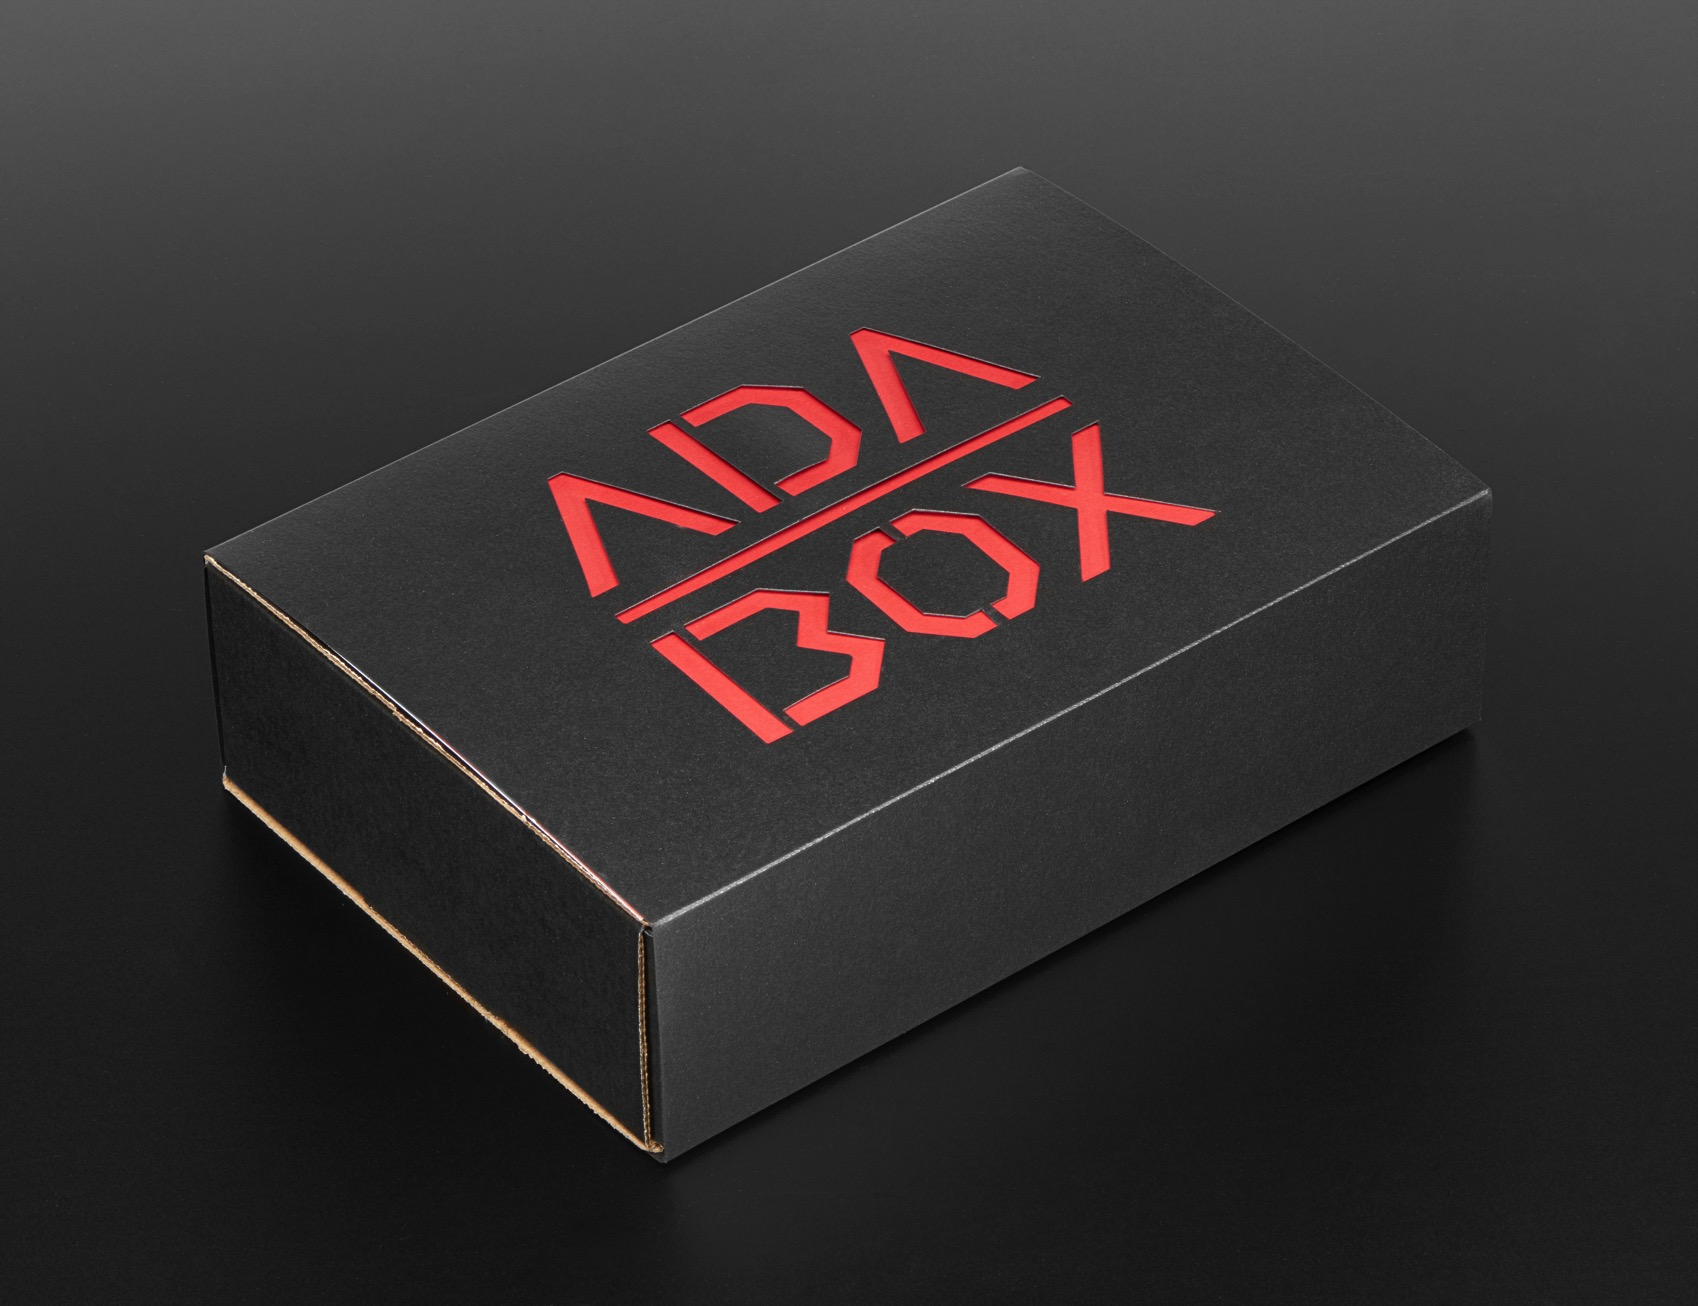 Adabox 05 iso packaging ORIG